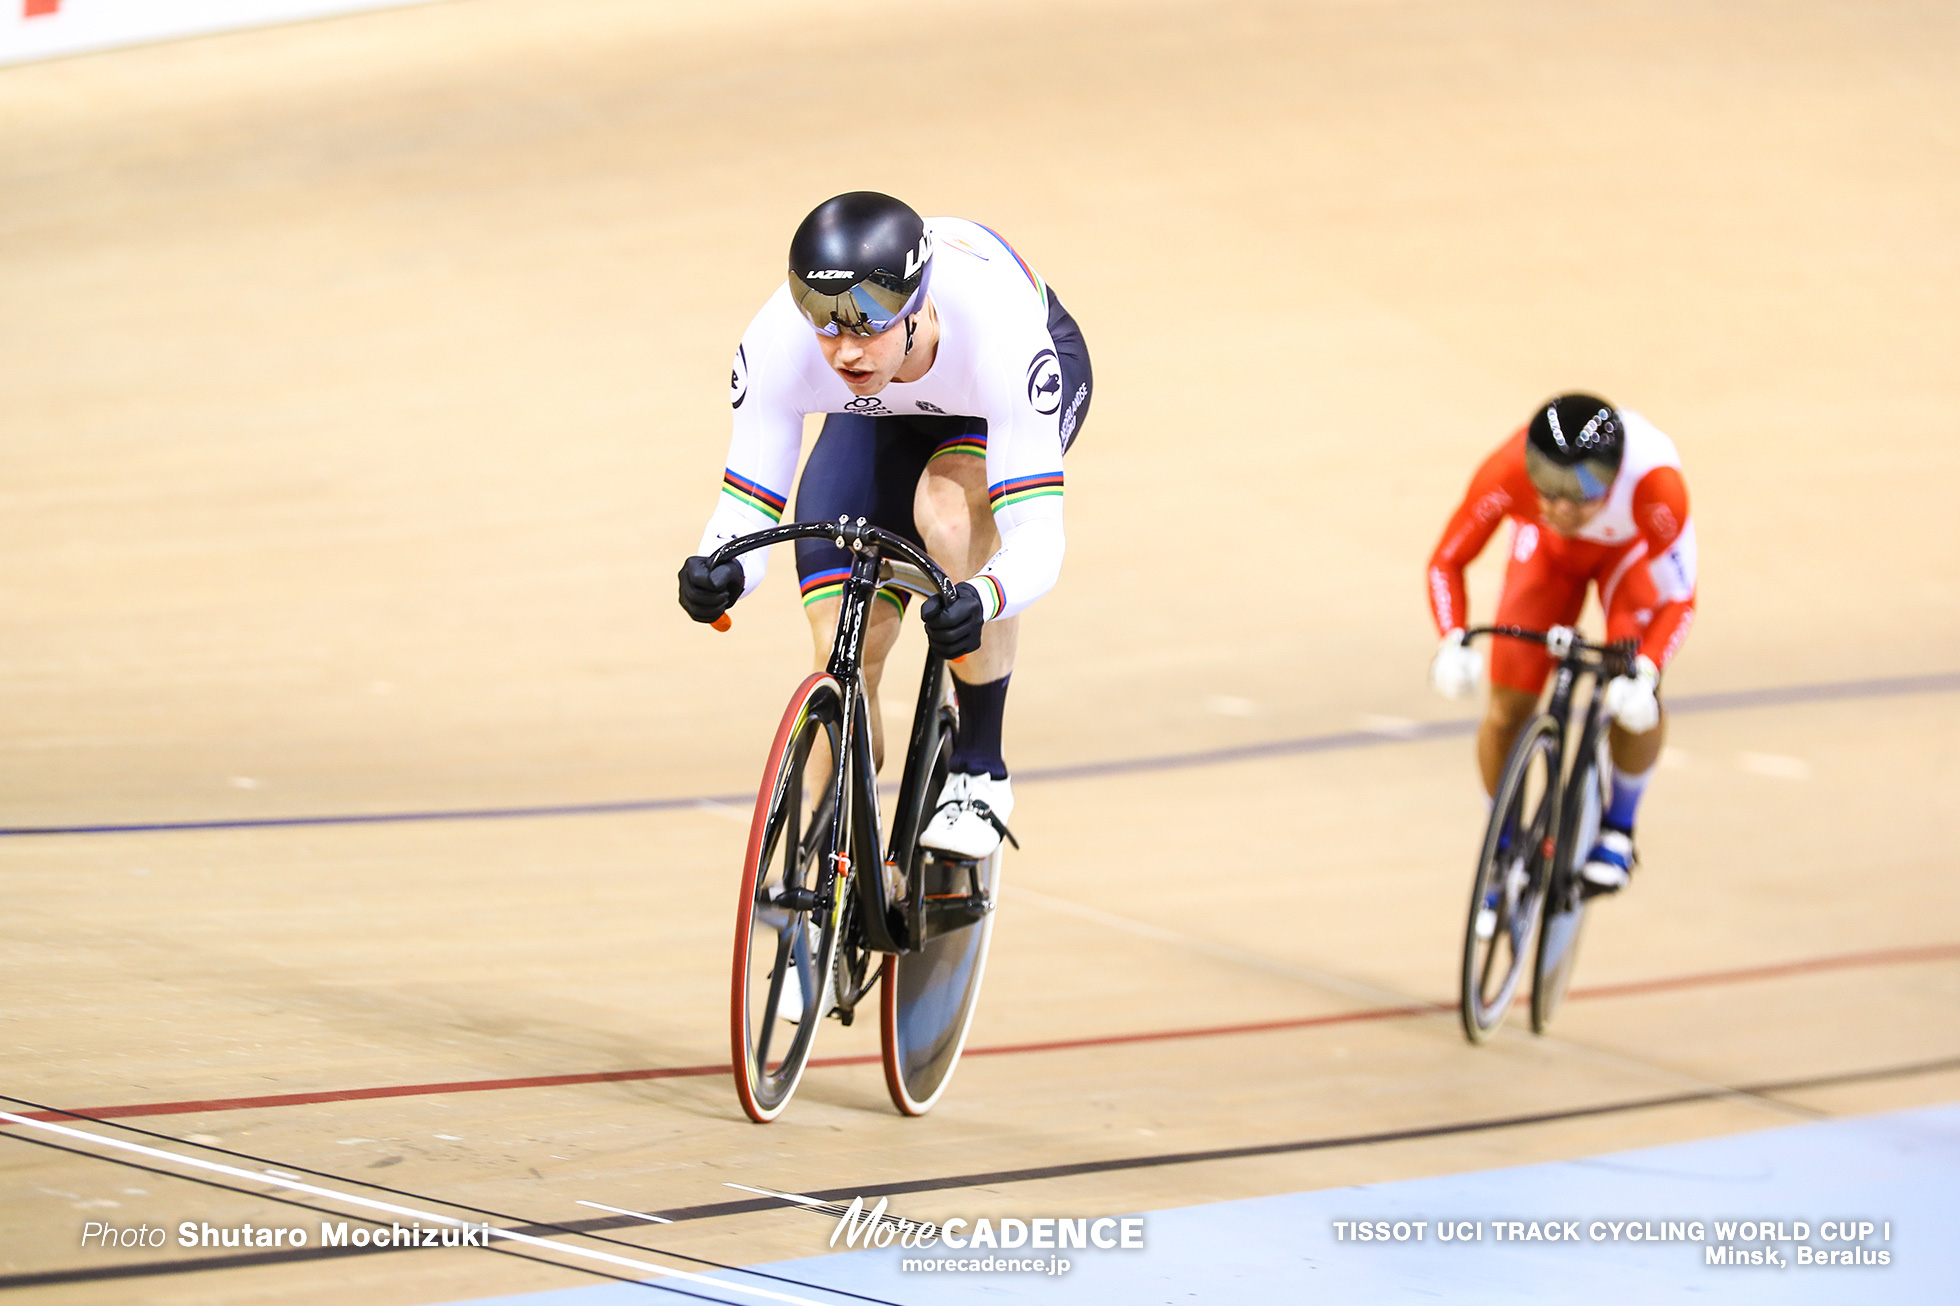 2nd Round / Men's Sprint / TISSOT UCI TRACK CYCLING WORLD CUP I, Minsk, Beralus